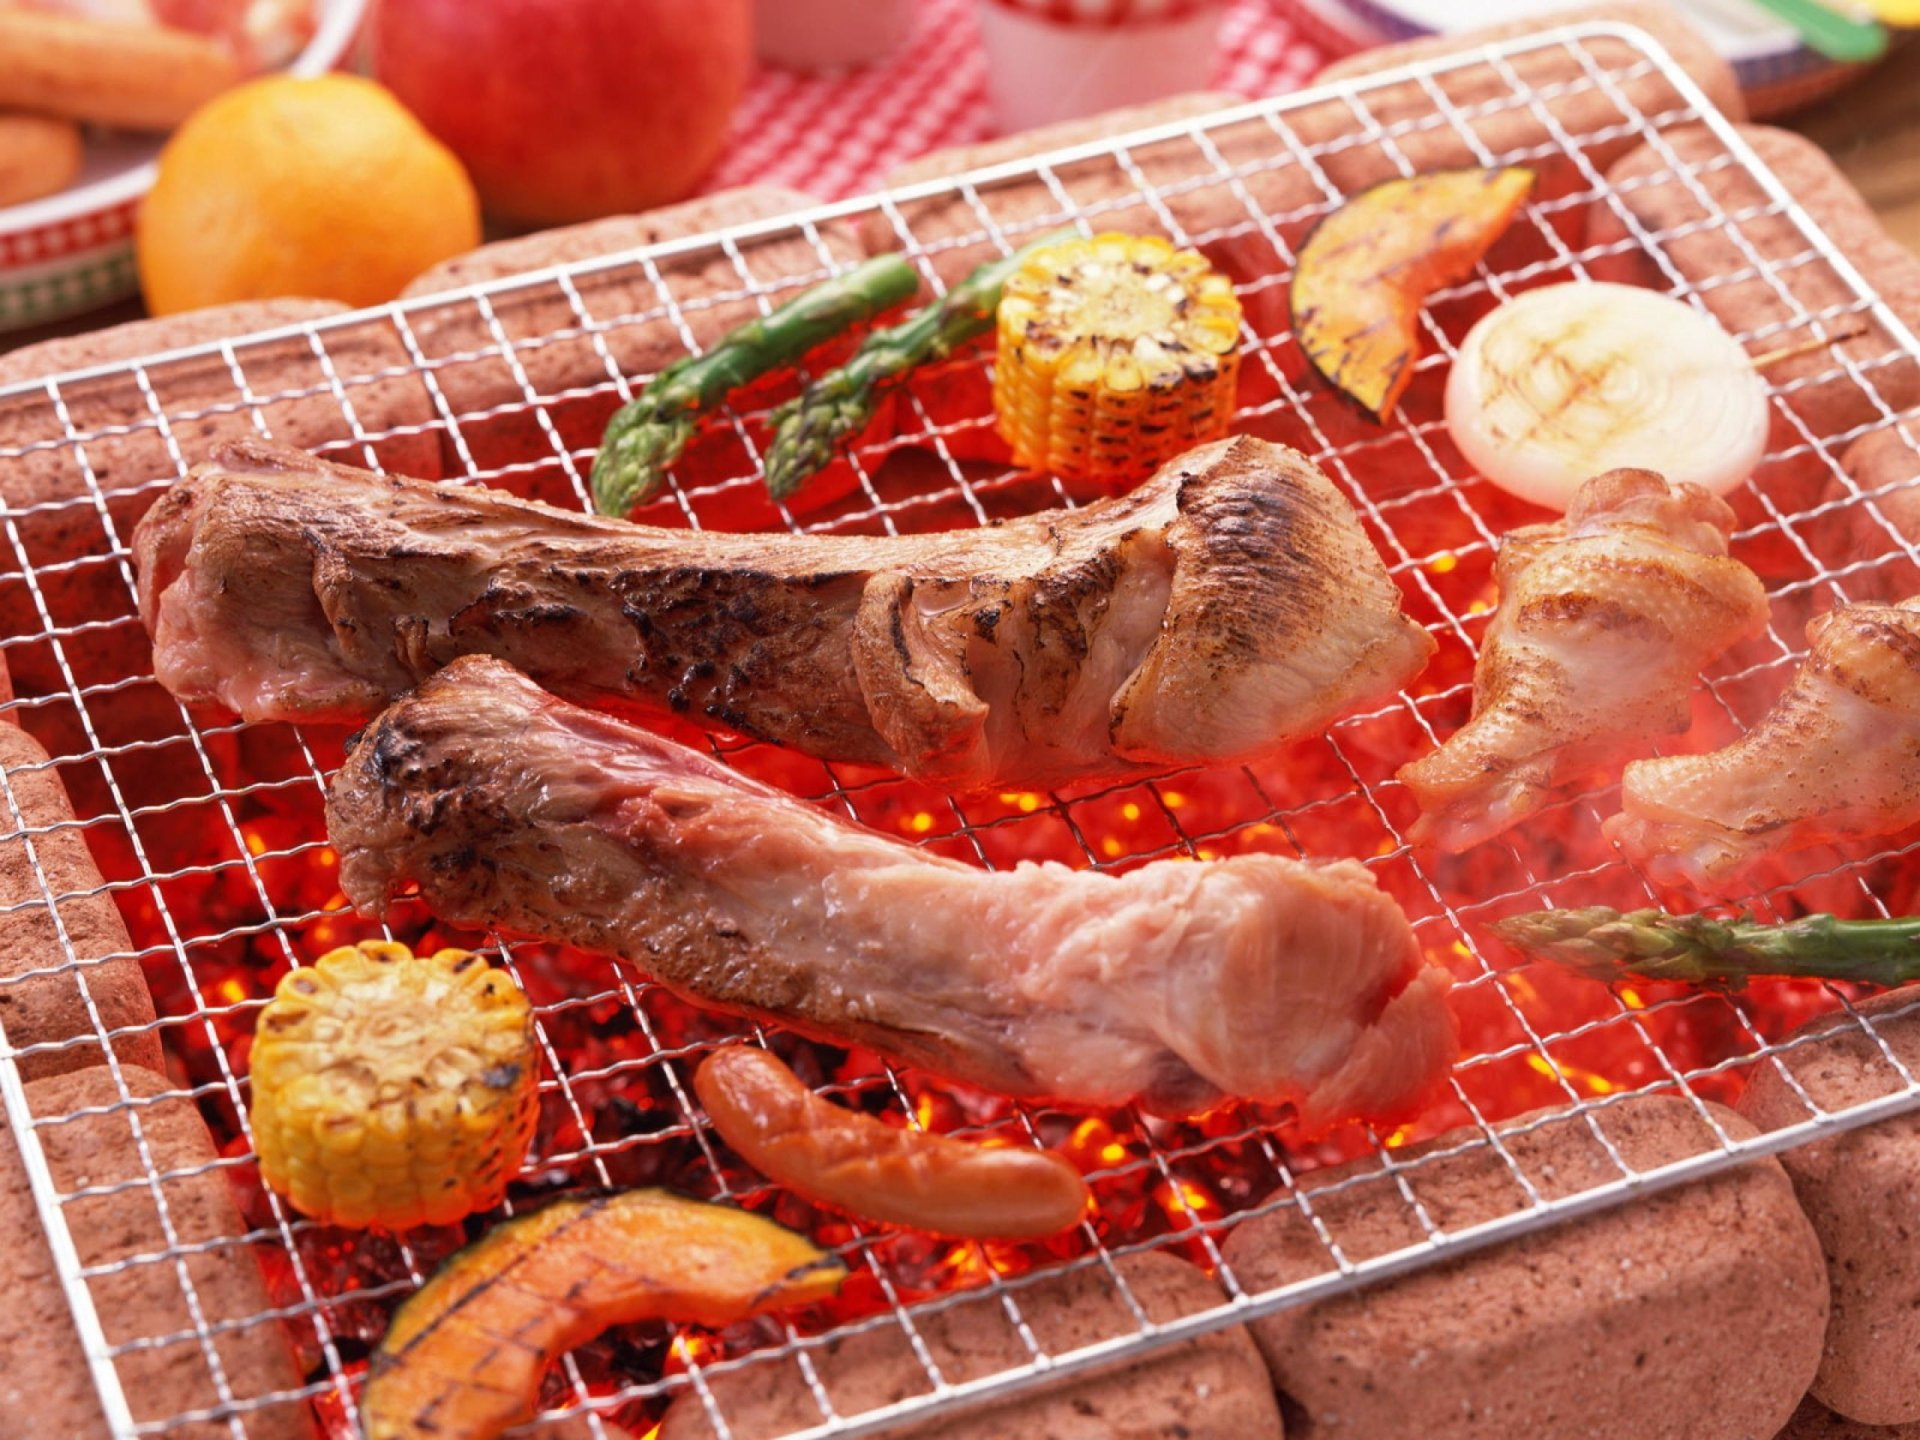 Food - Barbecue  Food Meat Lunch Chicken Pork Meal Wallpaper